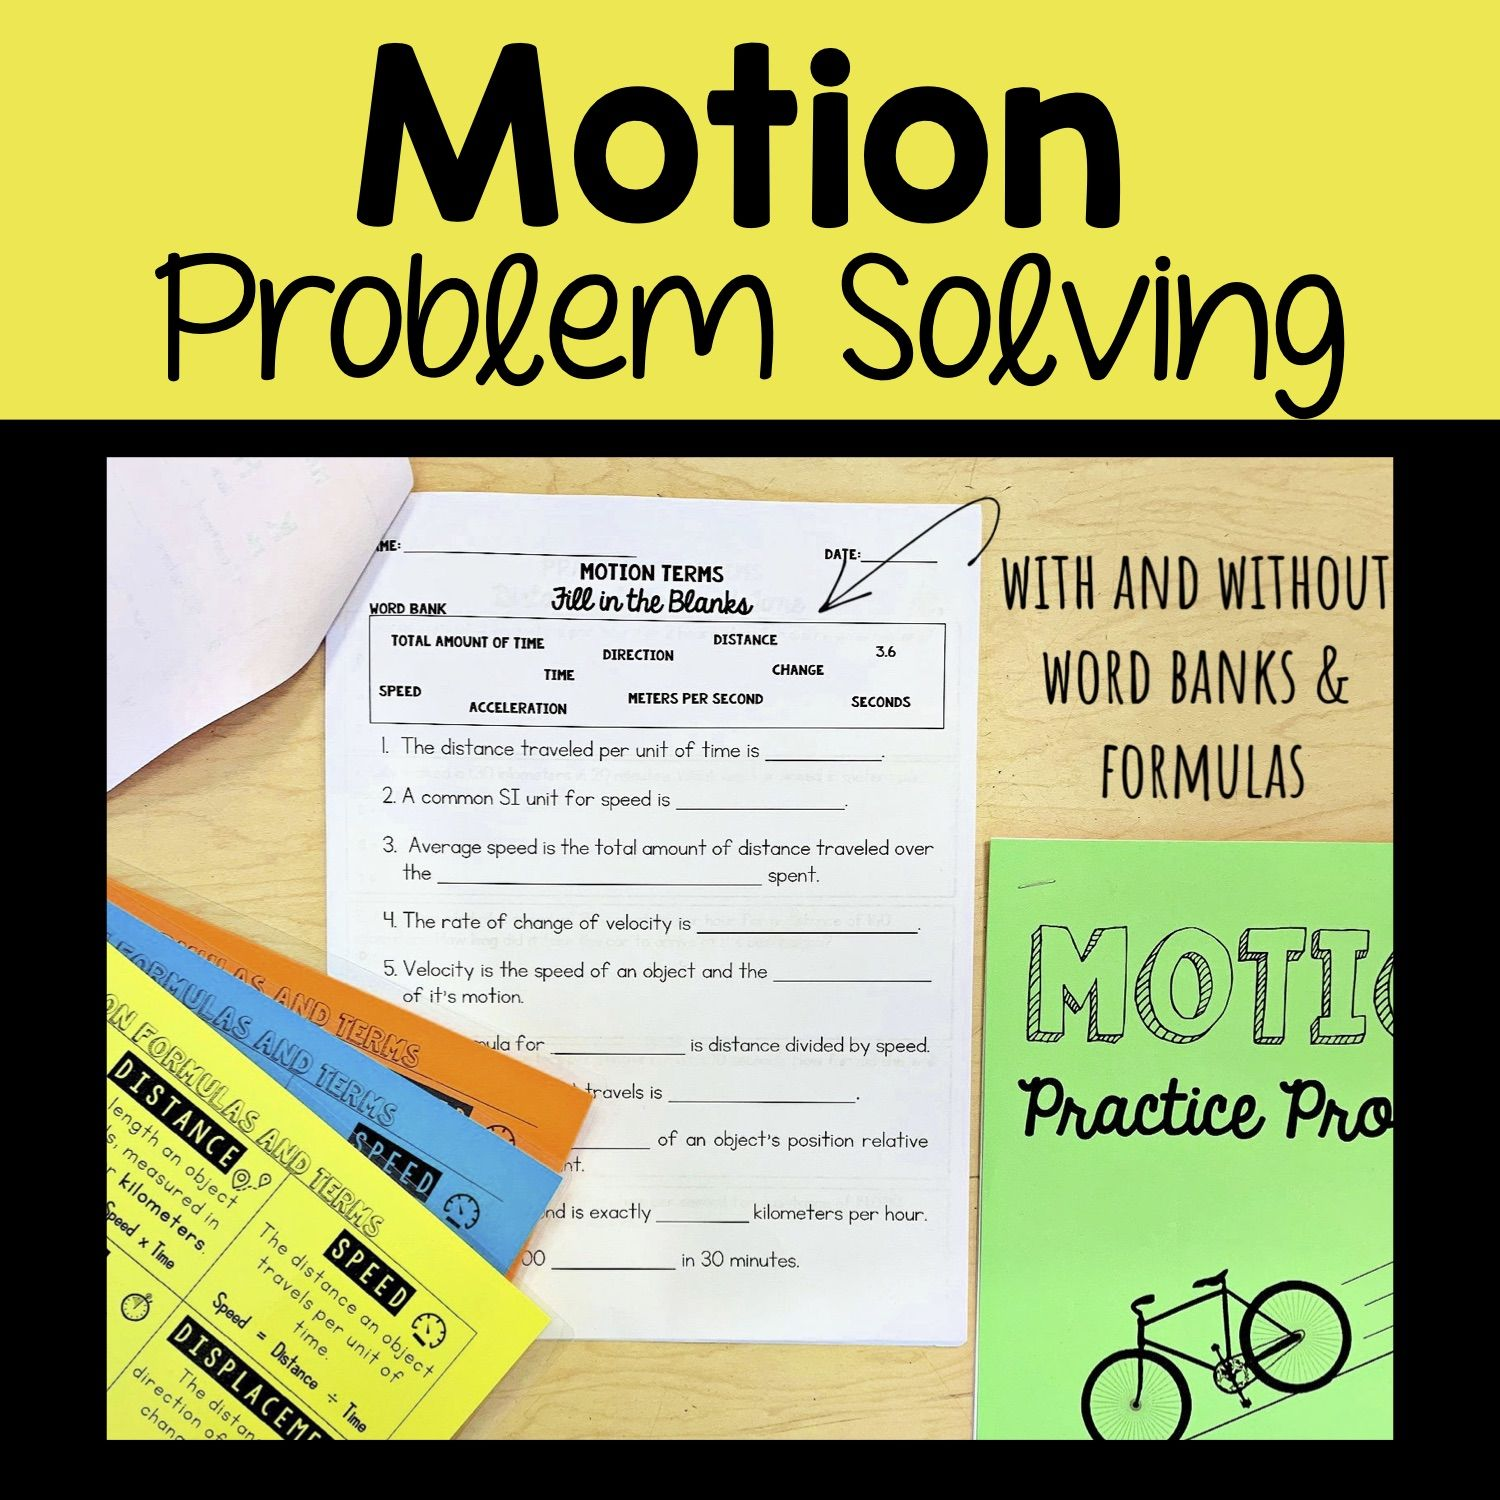 Motion Problem Solving Set Process Steps Examples